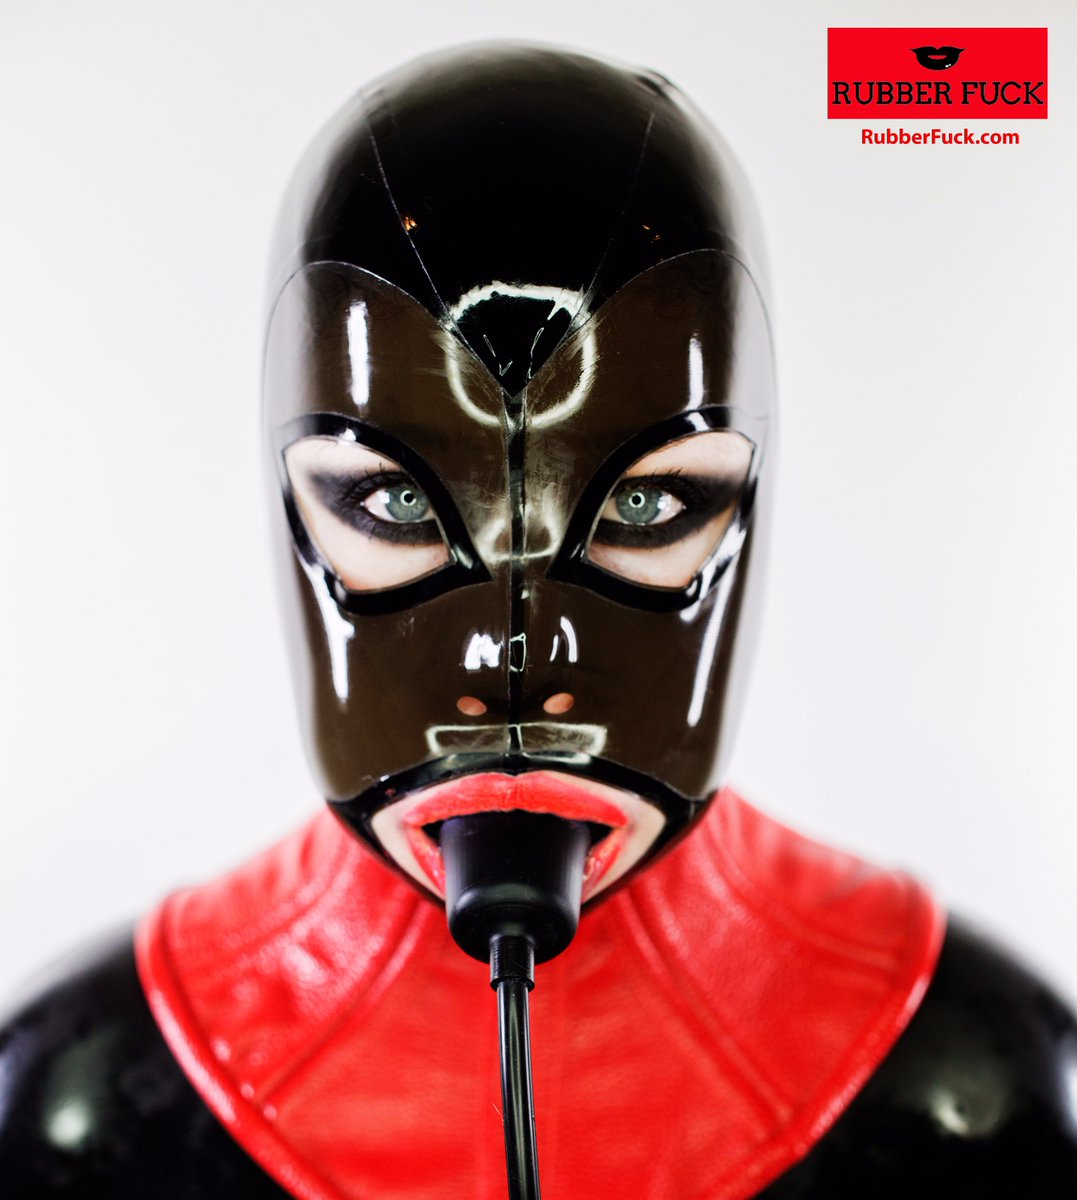 Rubberfuck On Twitter New Things Cumming Soon I Keep My Mouth Sealed Til Then Rubber Latex Gummi Gag Inflatable Kinky Rubbergirl Rubberhood